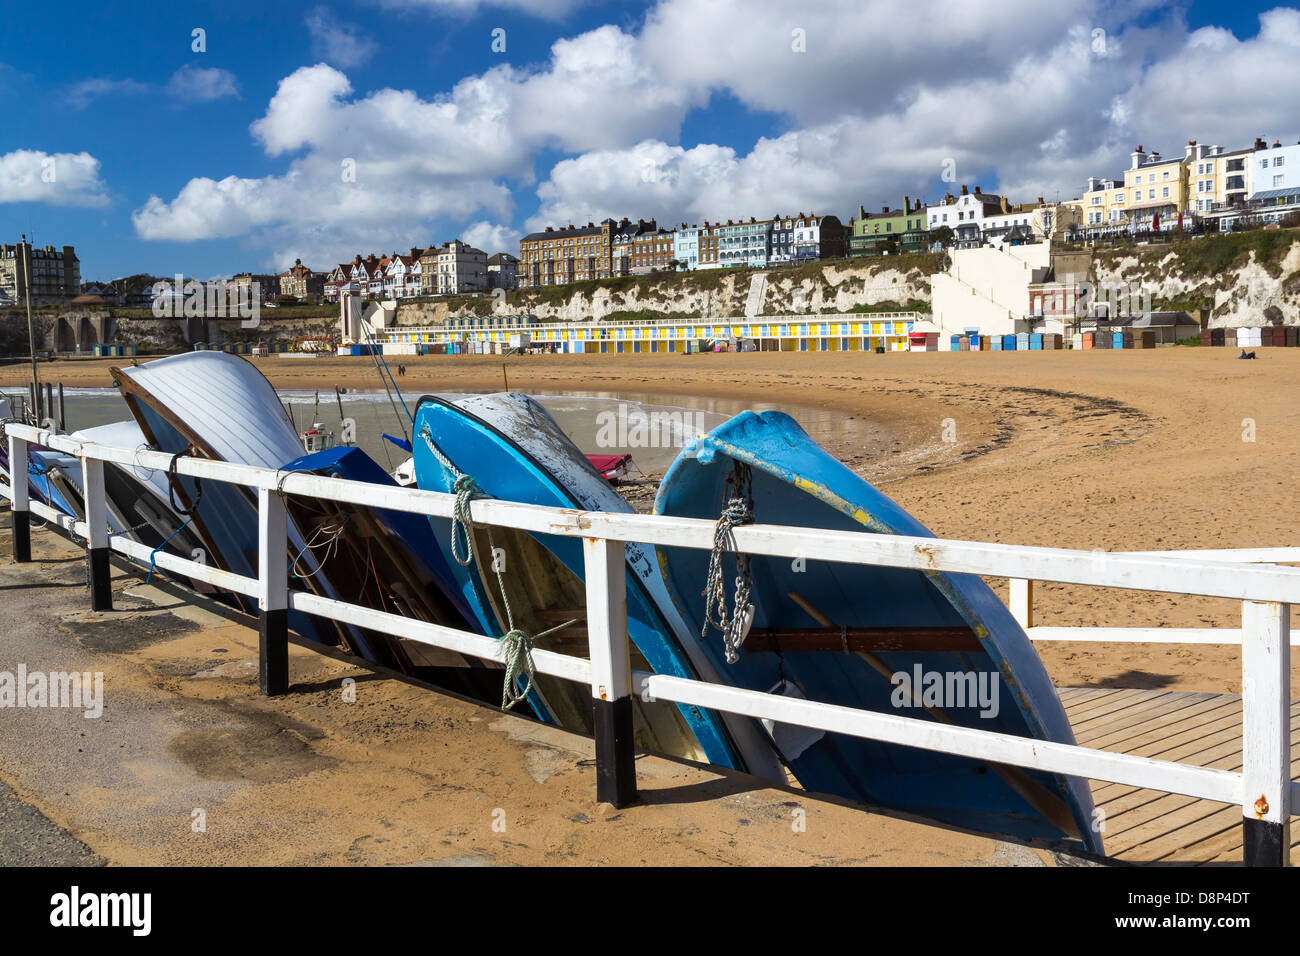 Viking Bay at Broadstairs, on the Isle of Thanet, Kent England UK Stock Photo